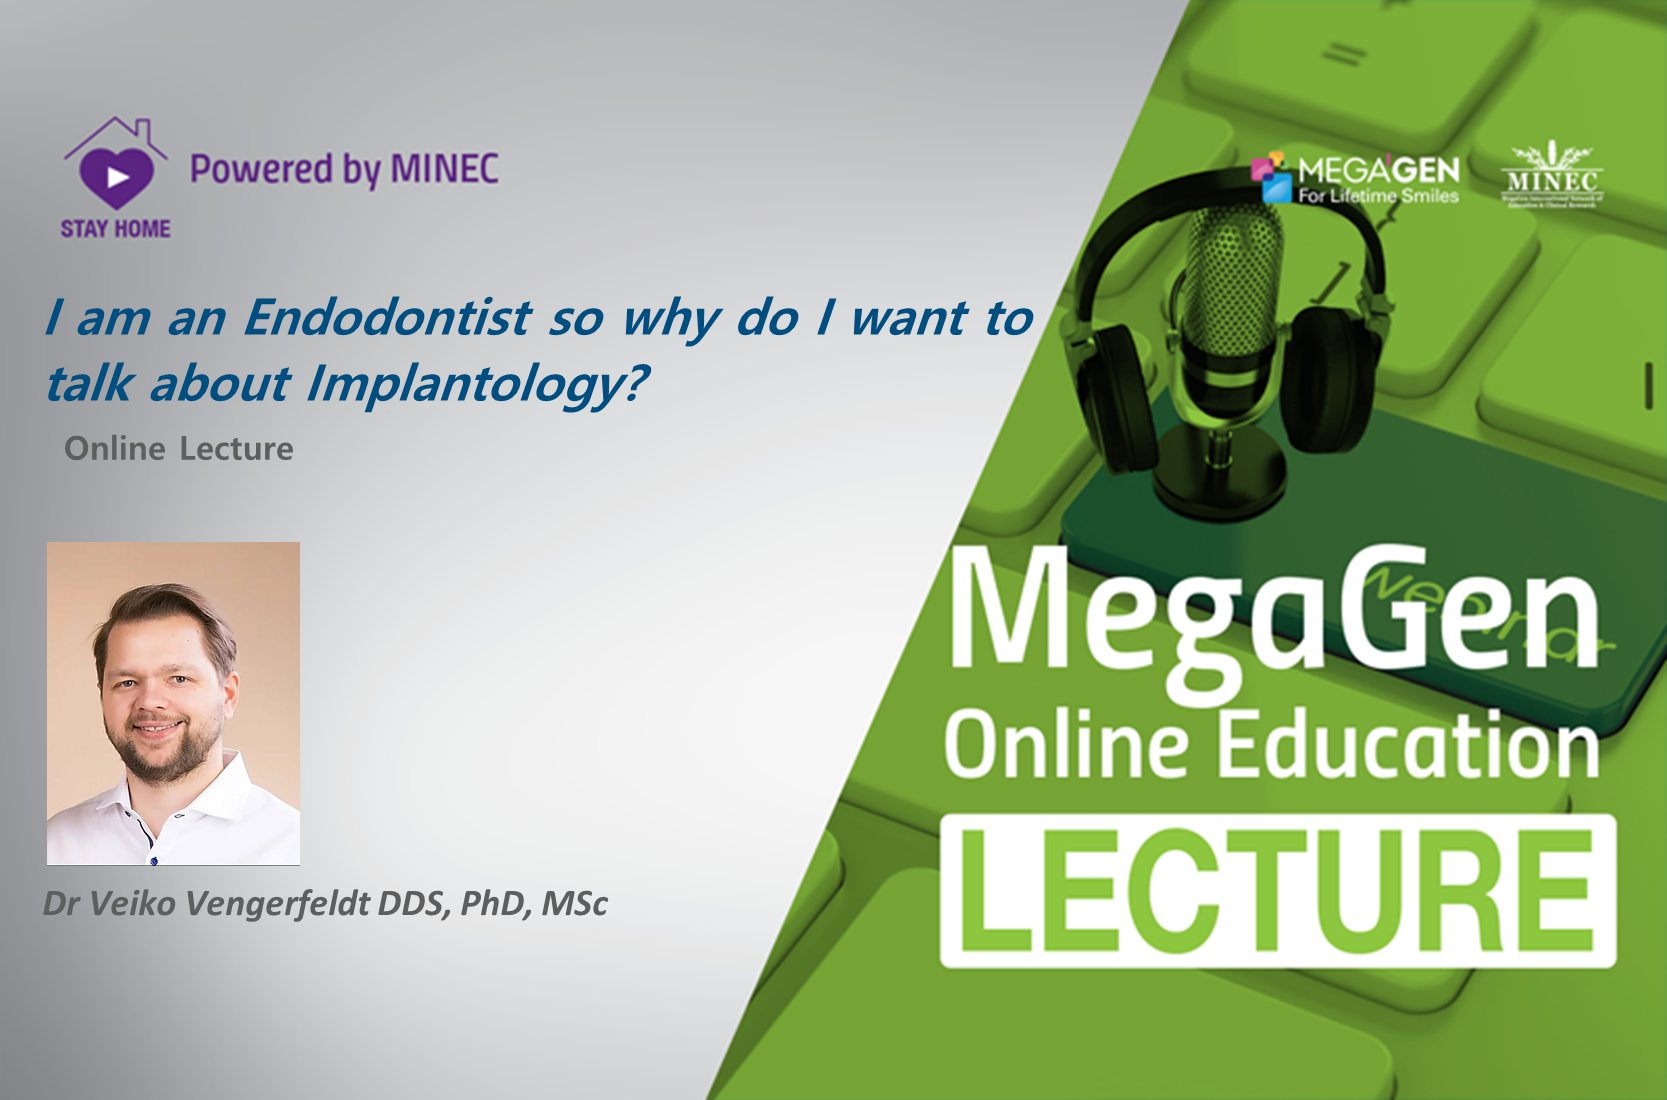 I am an Endodontist so why do I want to  talk about Implantology?